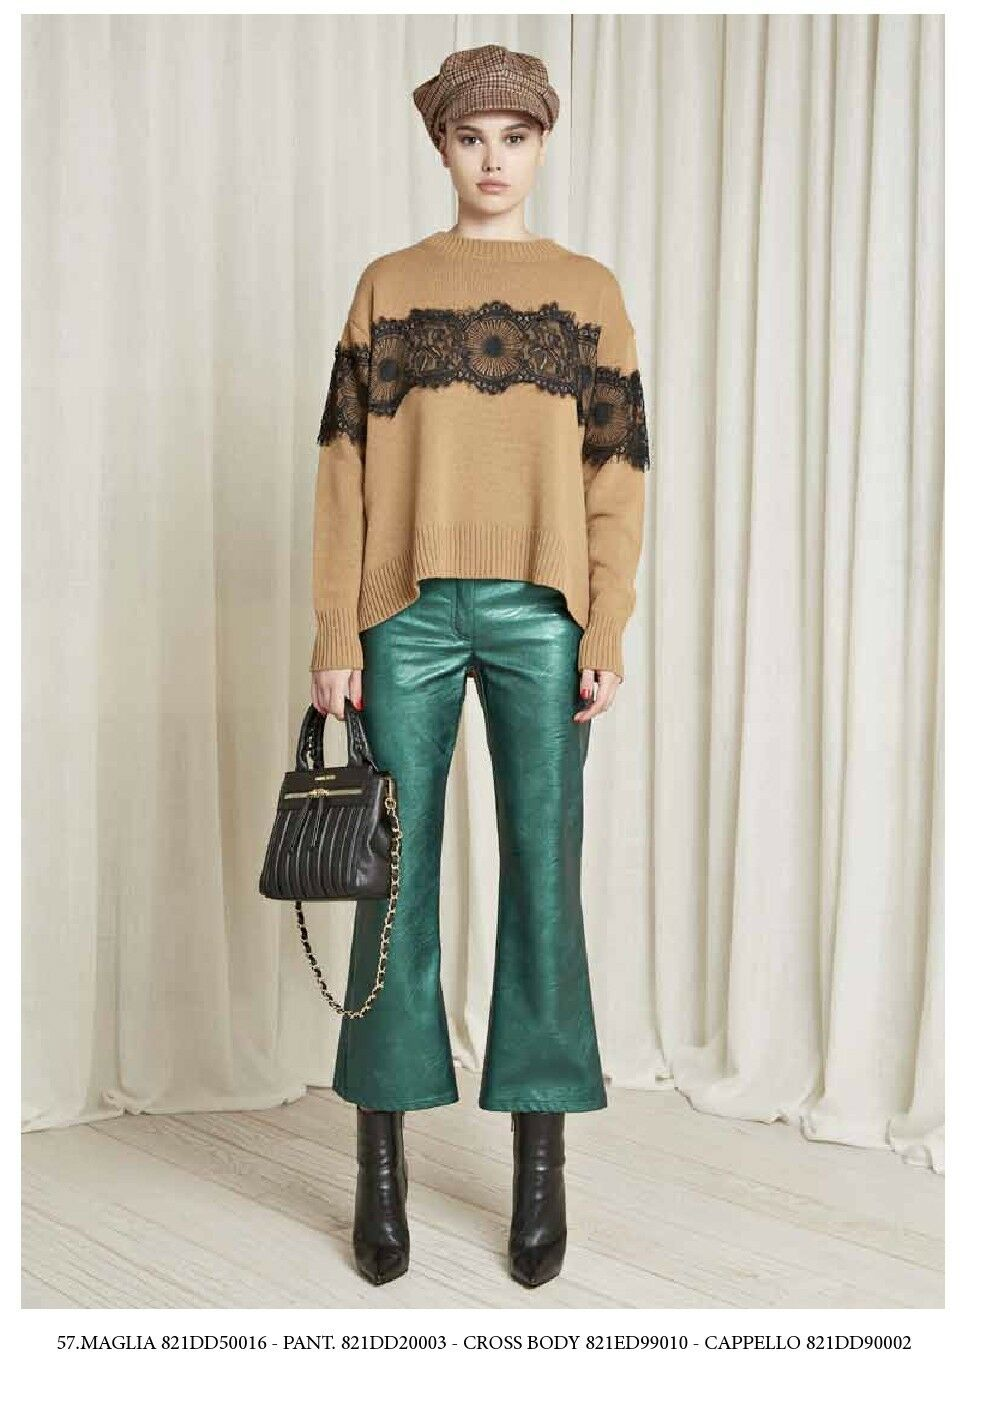 Outlet -60% 821DD20003 Denny pink trousers Autumn Winter 2018 disp